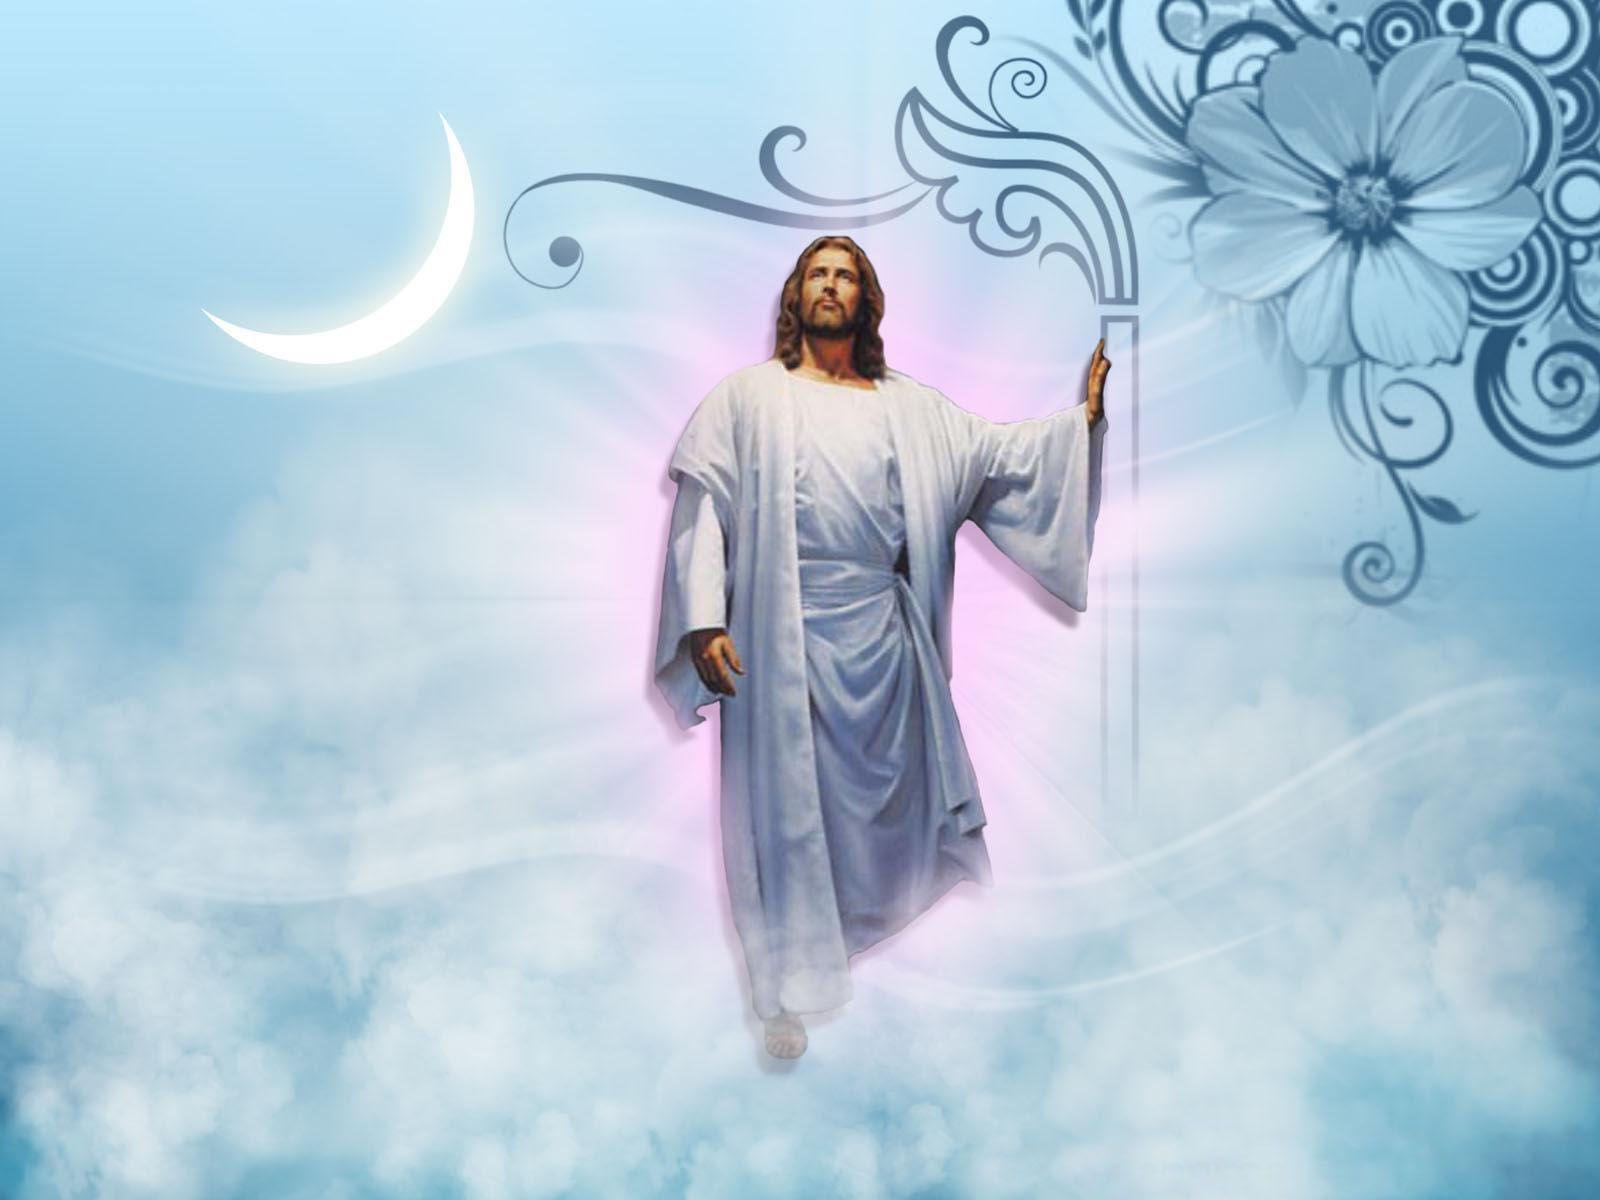 Jesus Christ Hd Wallpapers 1080p Wallpaper Cave